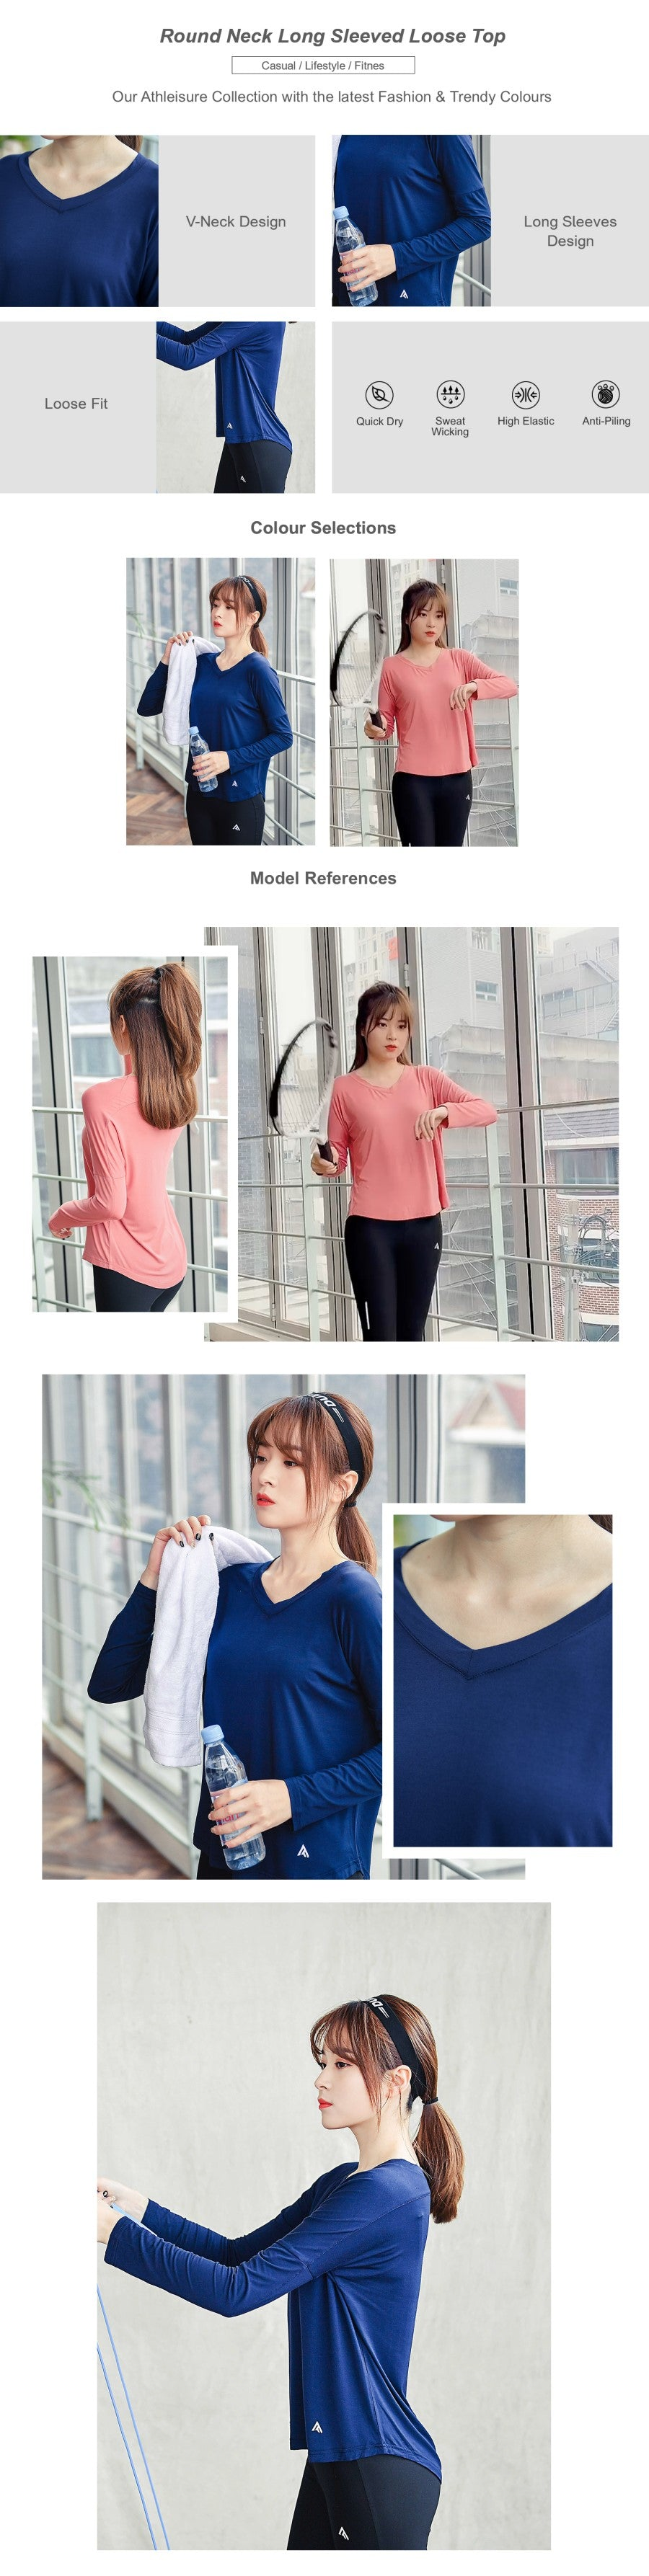 Round Neck Long Sleeved Loose Top